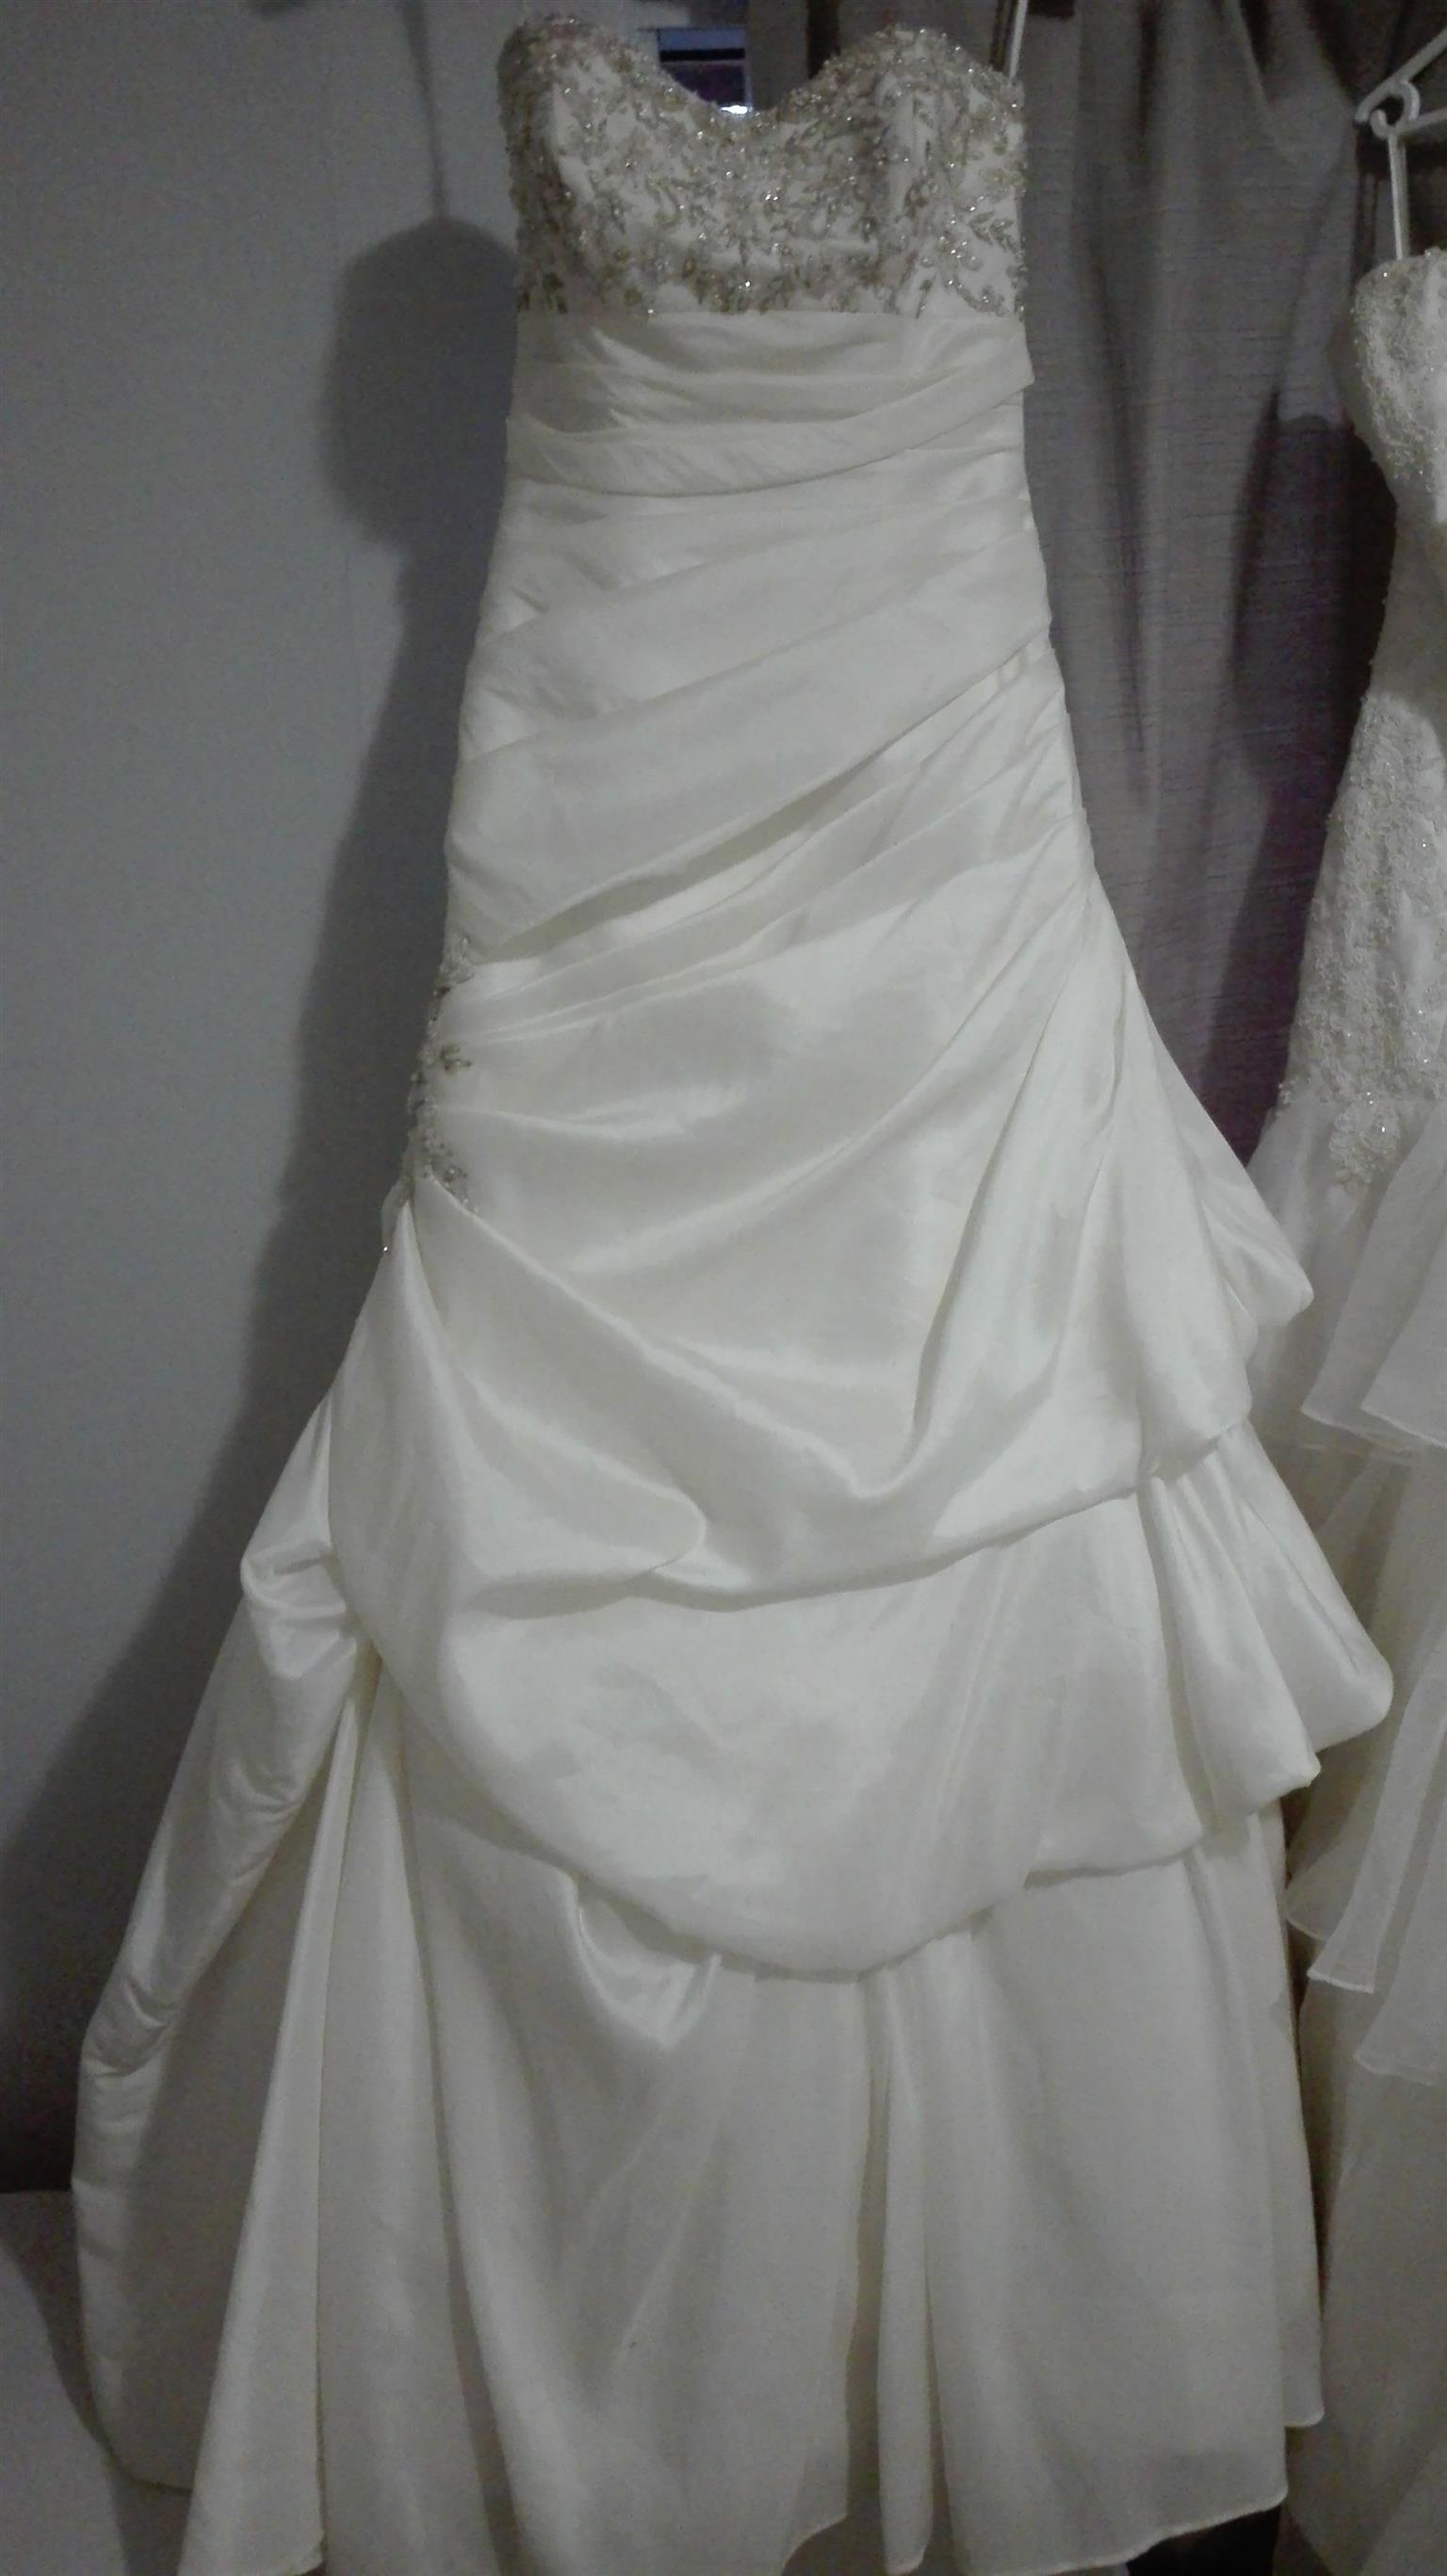 Stunning bridal gowns for sale or hire | Junk Mail